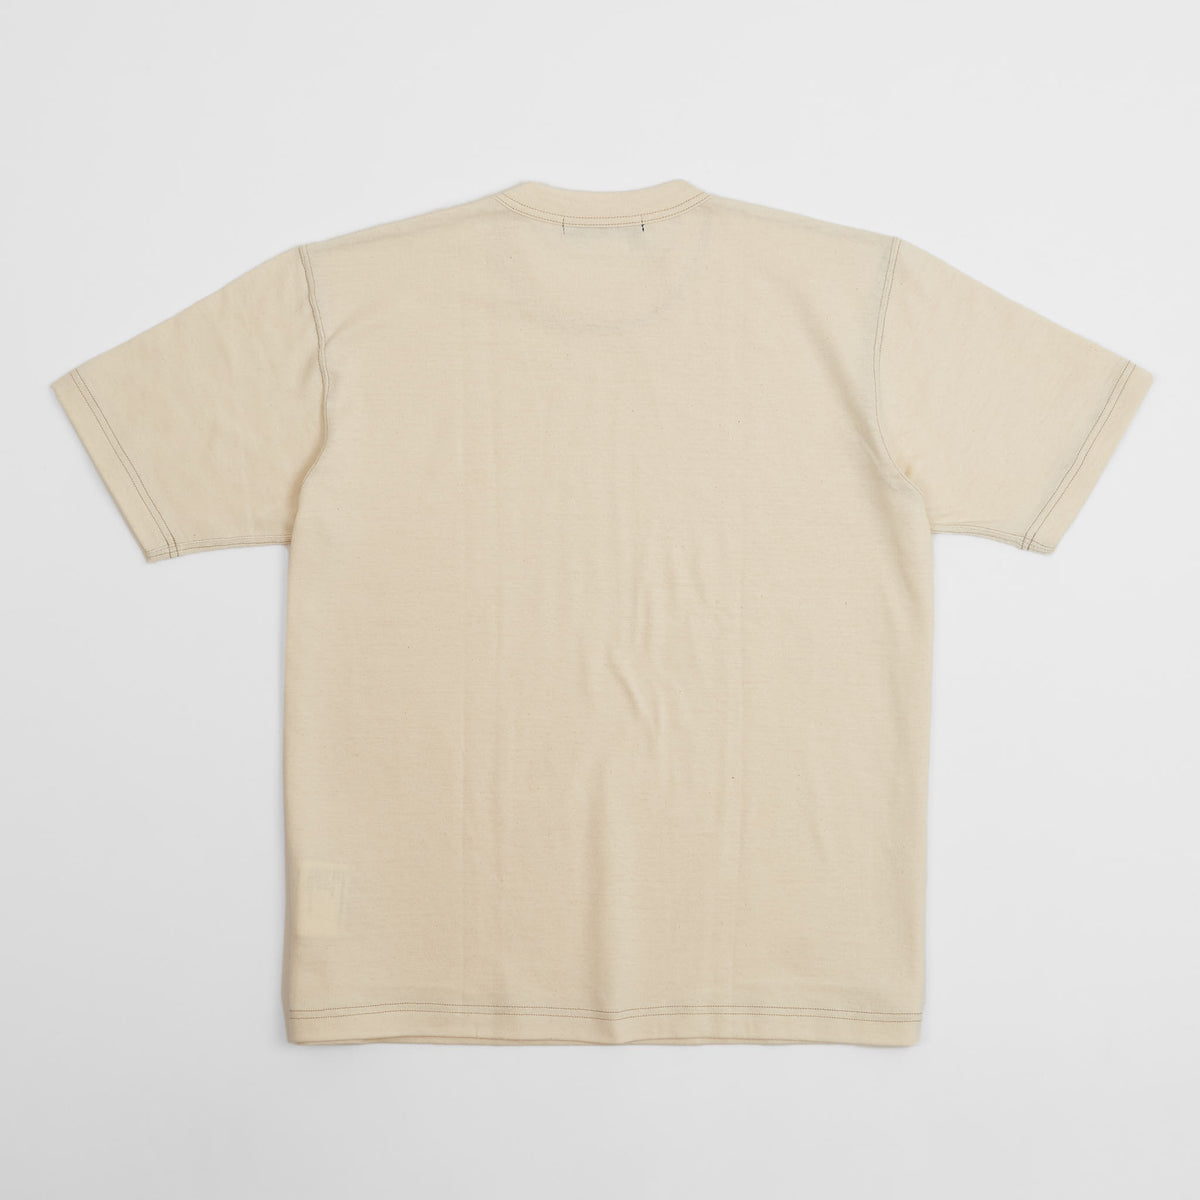 Junya Watanabe Man Medium Weight Cotton T-Shirt